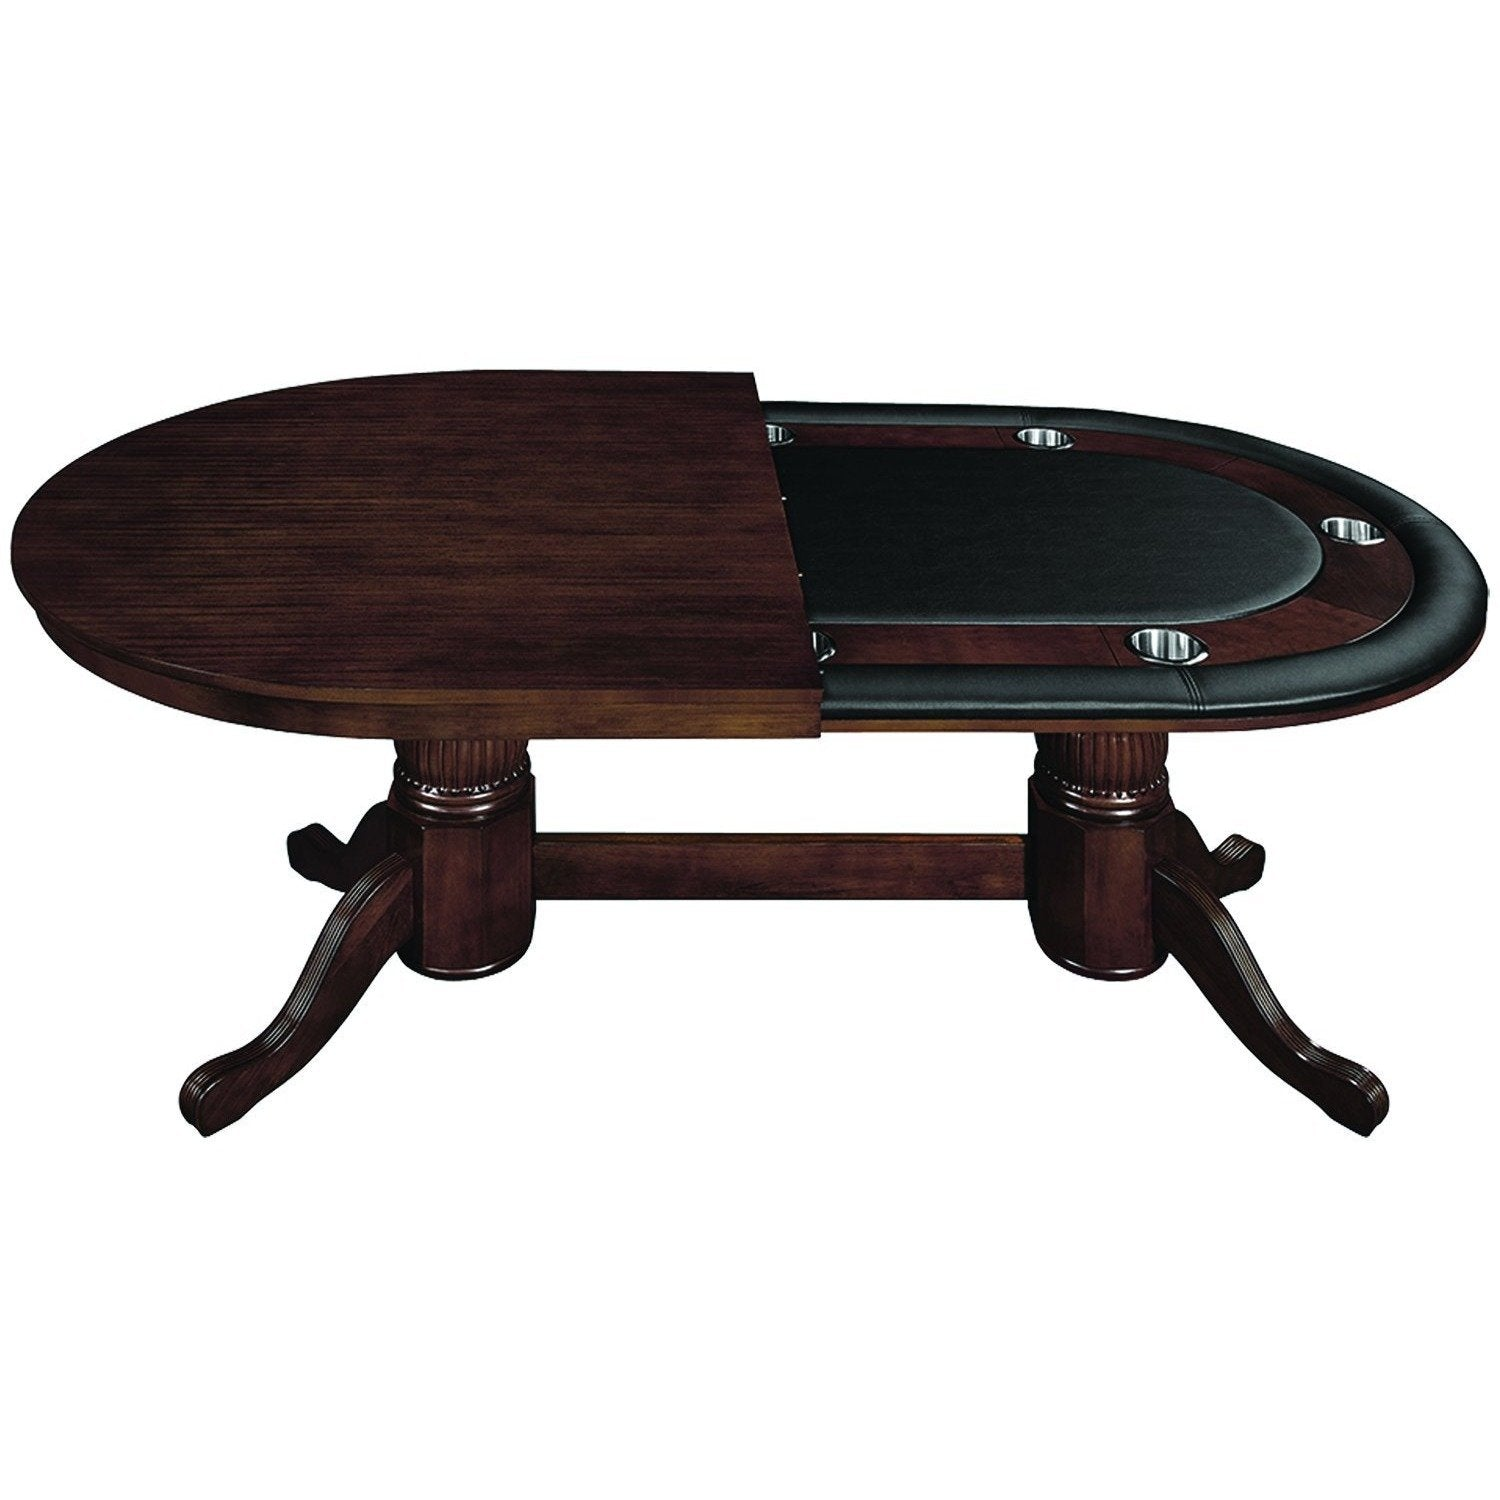 RAM Game Room Texas Holdem Oval Poker Table 9 Person